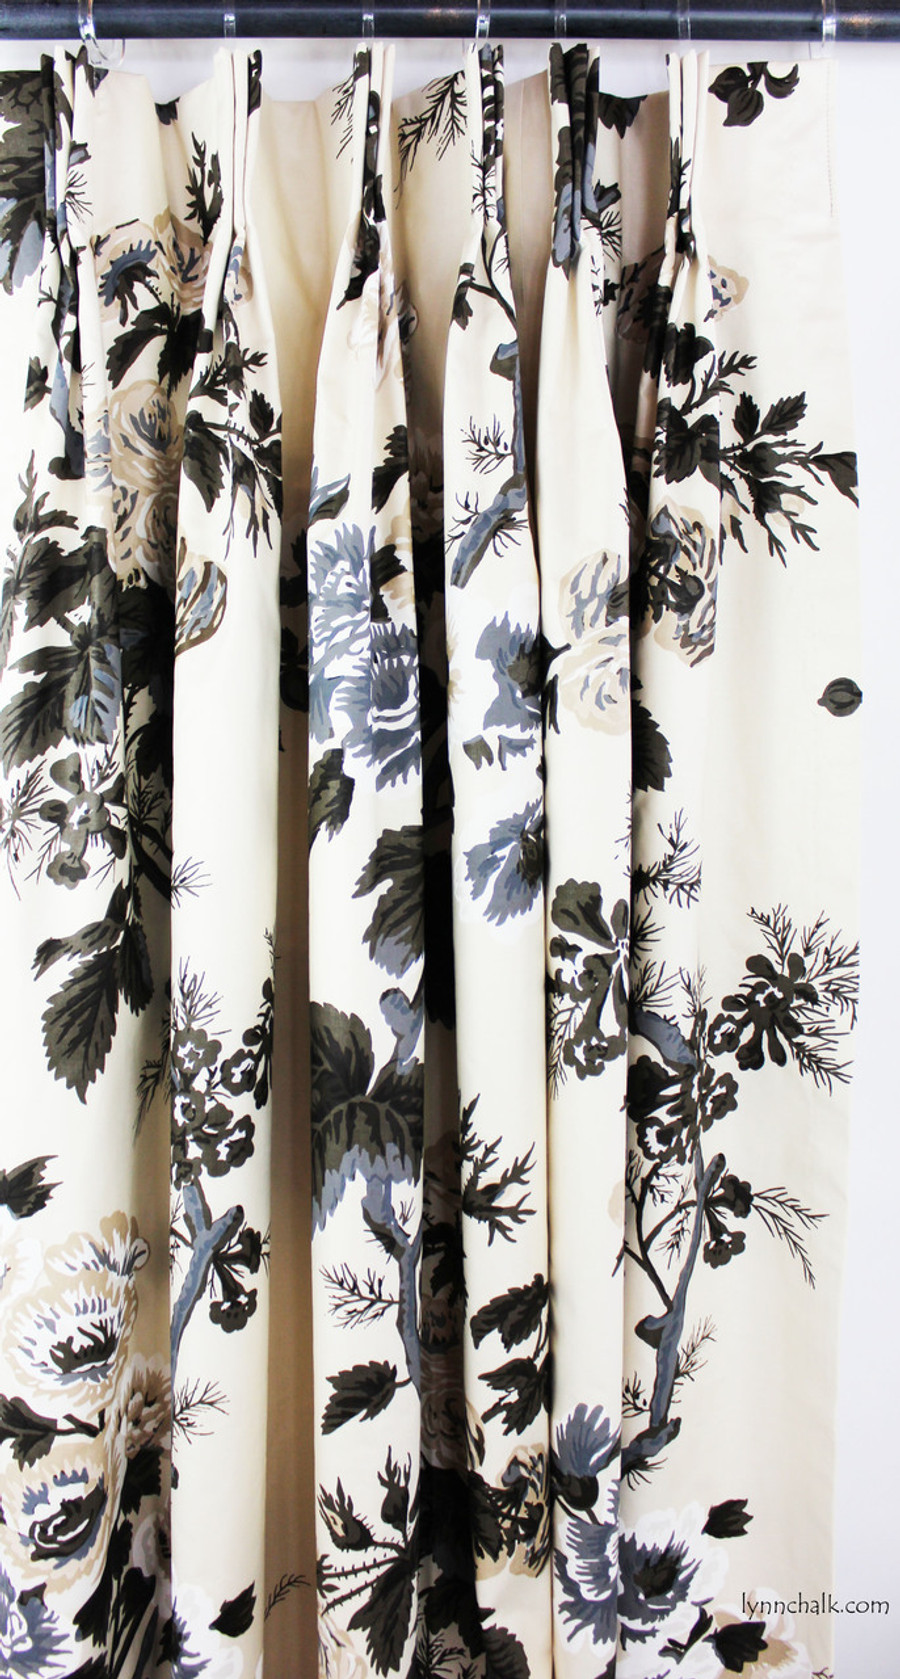 Custom Pinch Pleated Drapes in Pyne Hollyhock Print in Charcoal